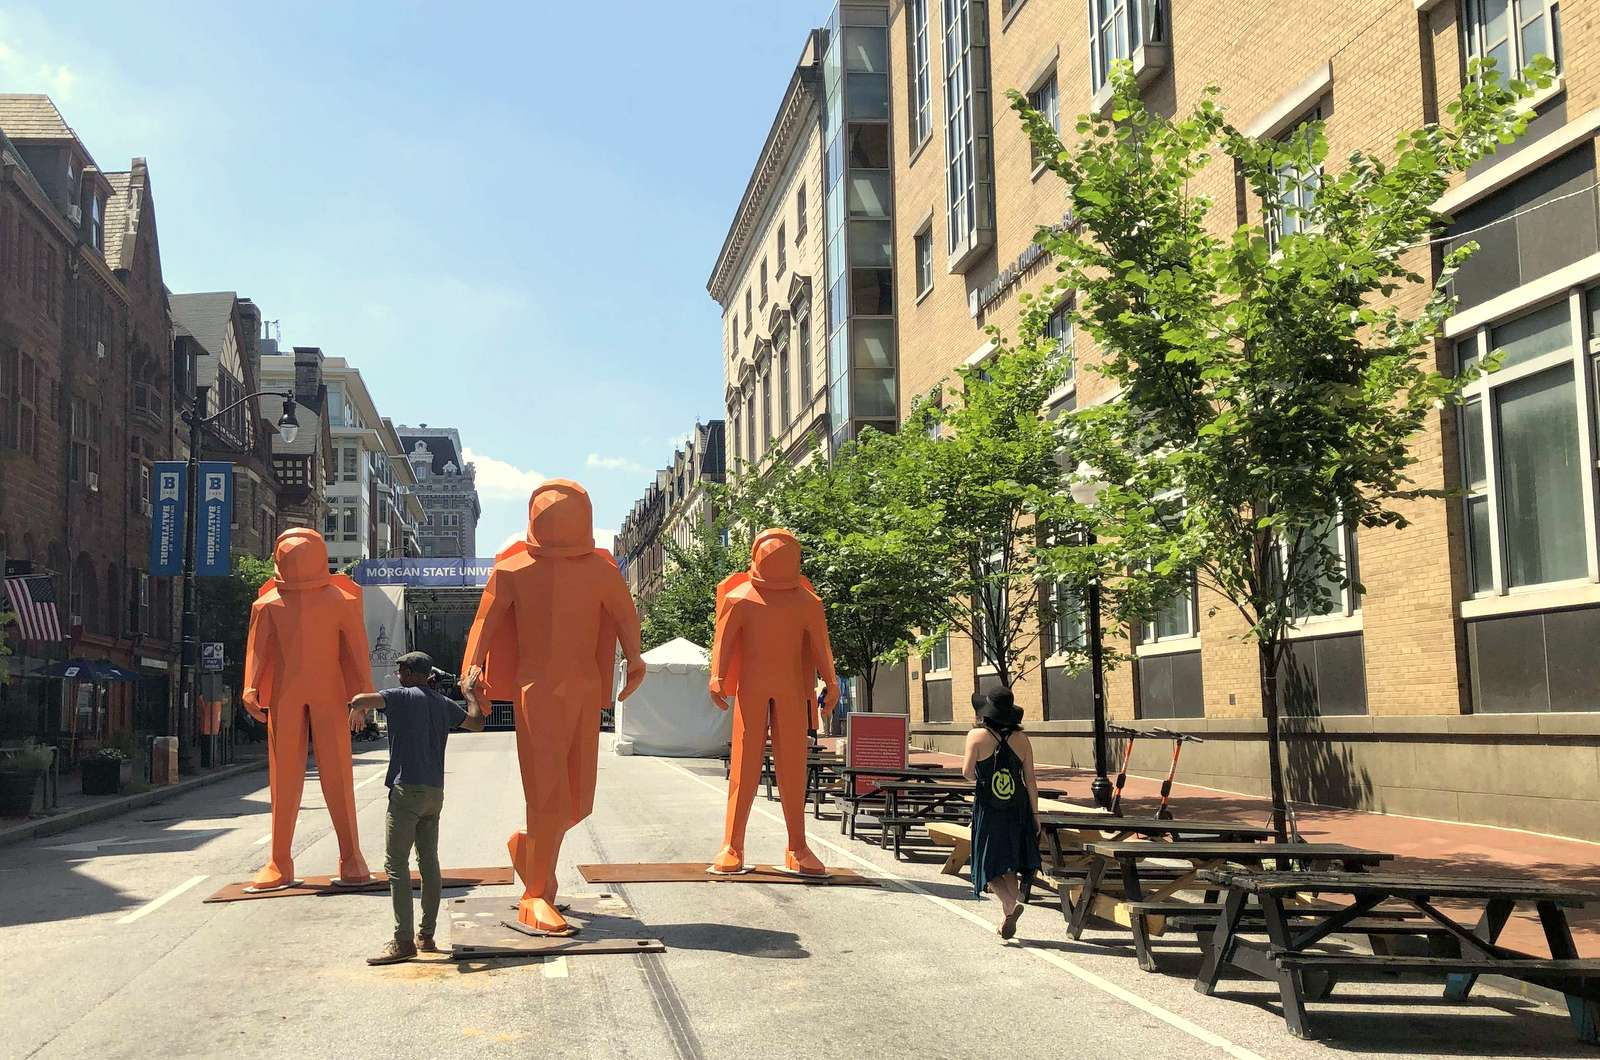 In keeping with this year's theme, three orange moonwalkers are stationed on Charles Street awaiting tonight's opening ceremonies. (Fern Shen)